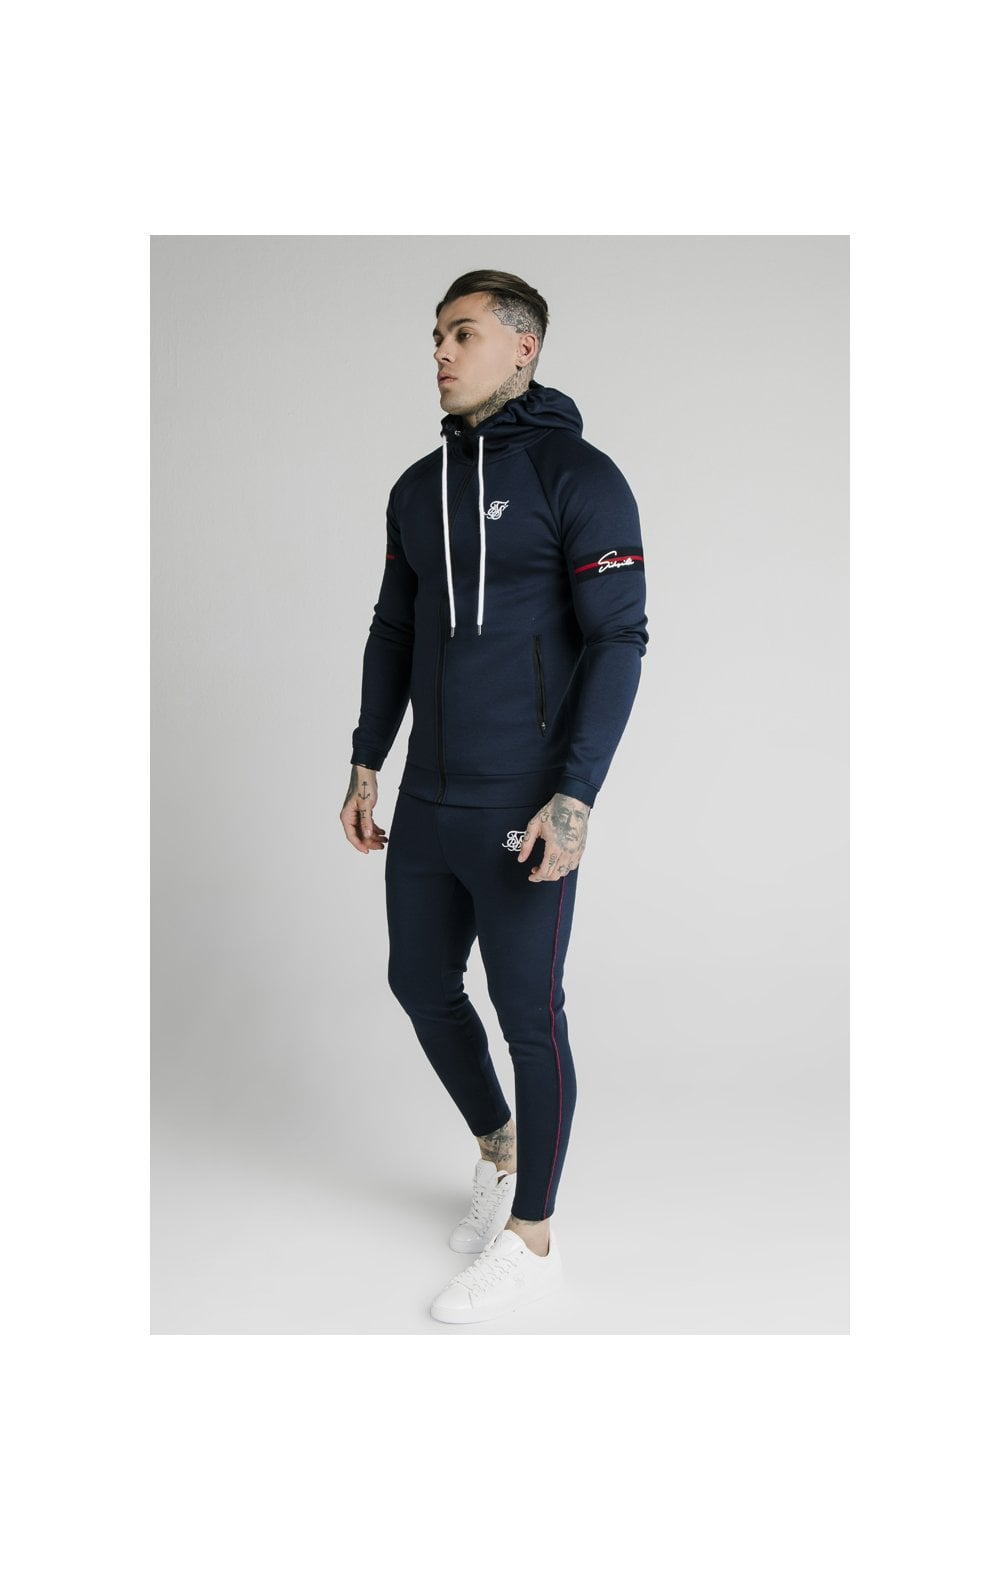 SikSilk Exposed Tape Zip Through Hoodie- Navy (3)